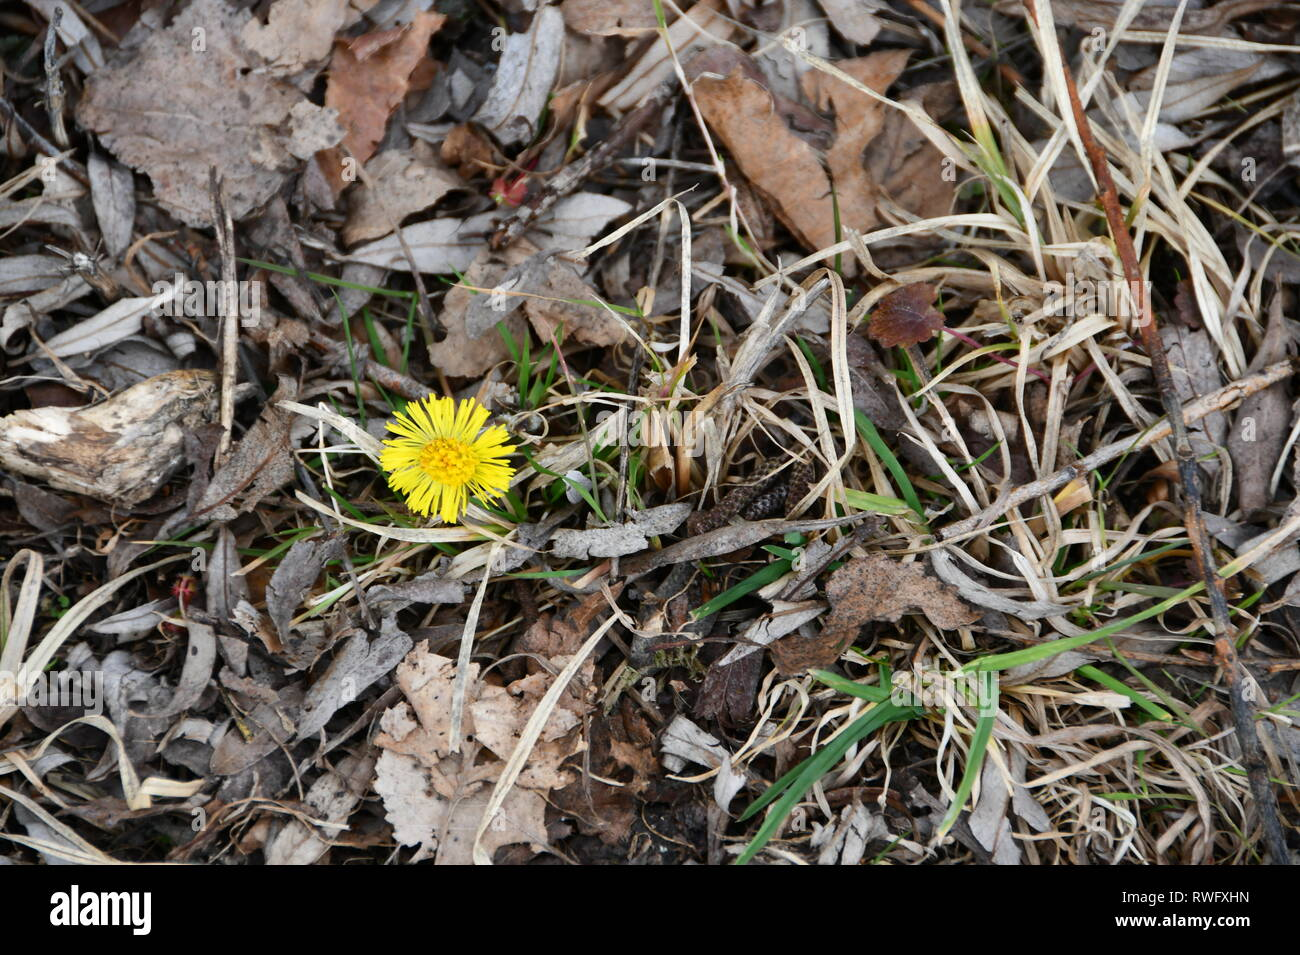 first signs of spring - yellow flower popping out of the leave covered ground - Stock Image